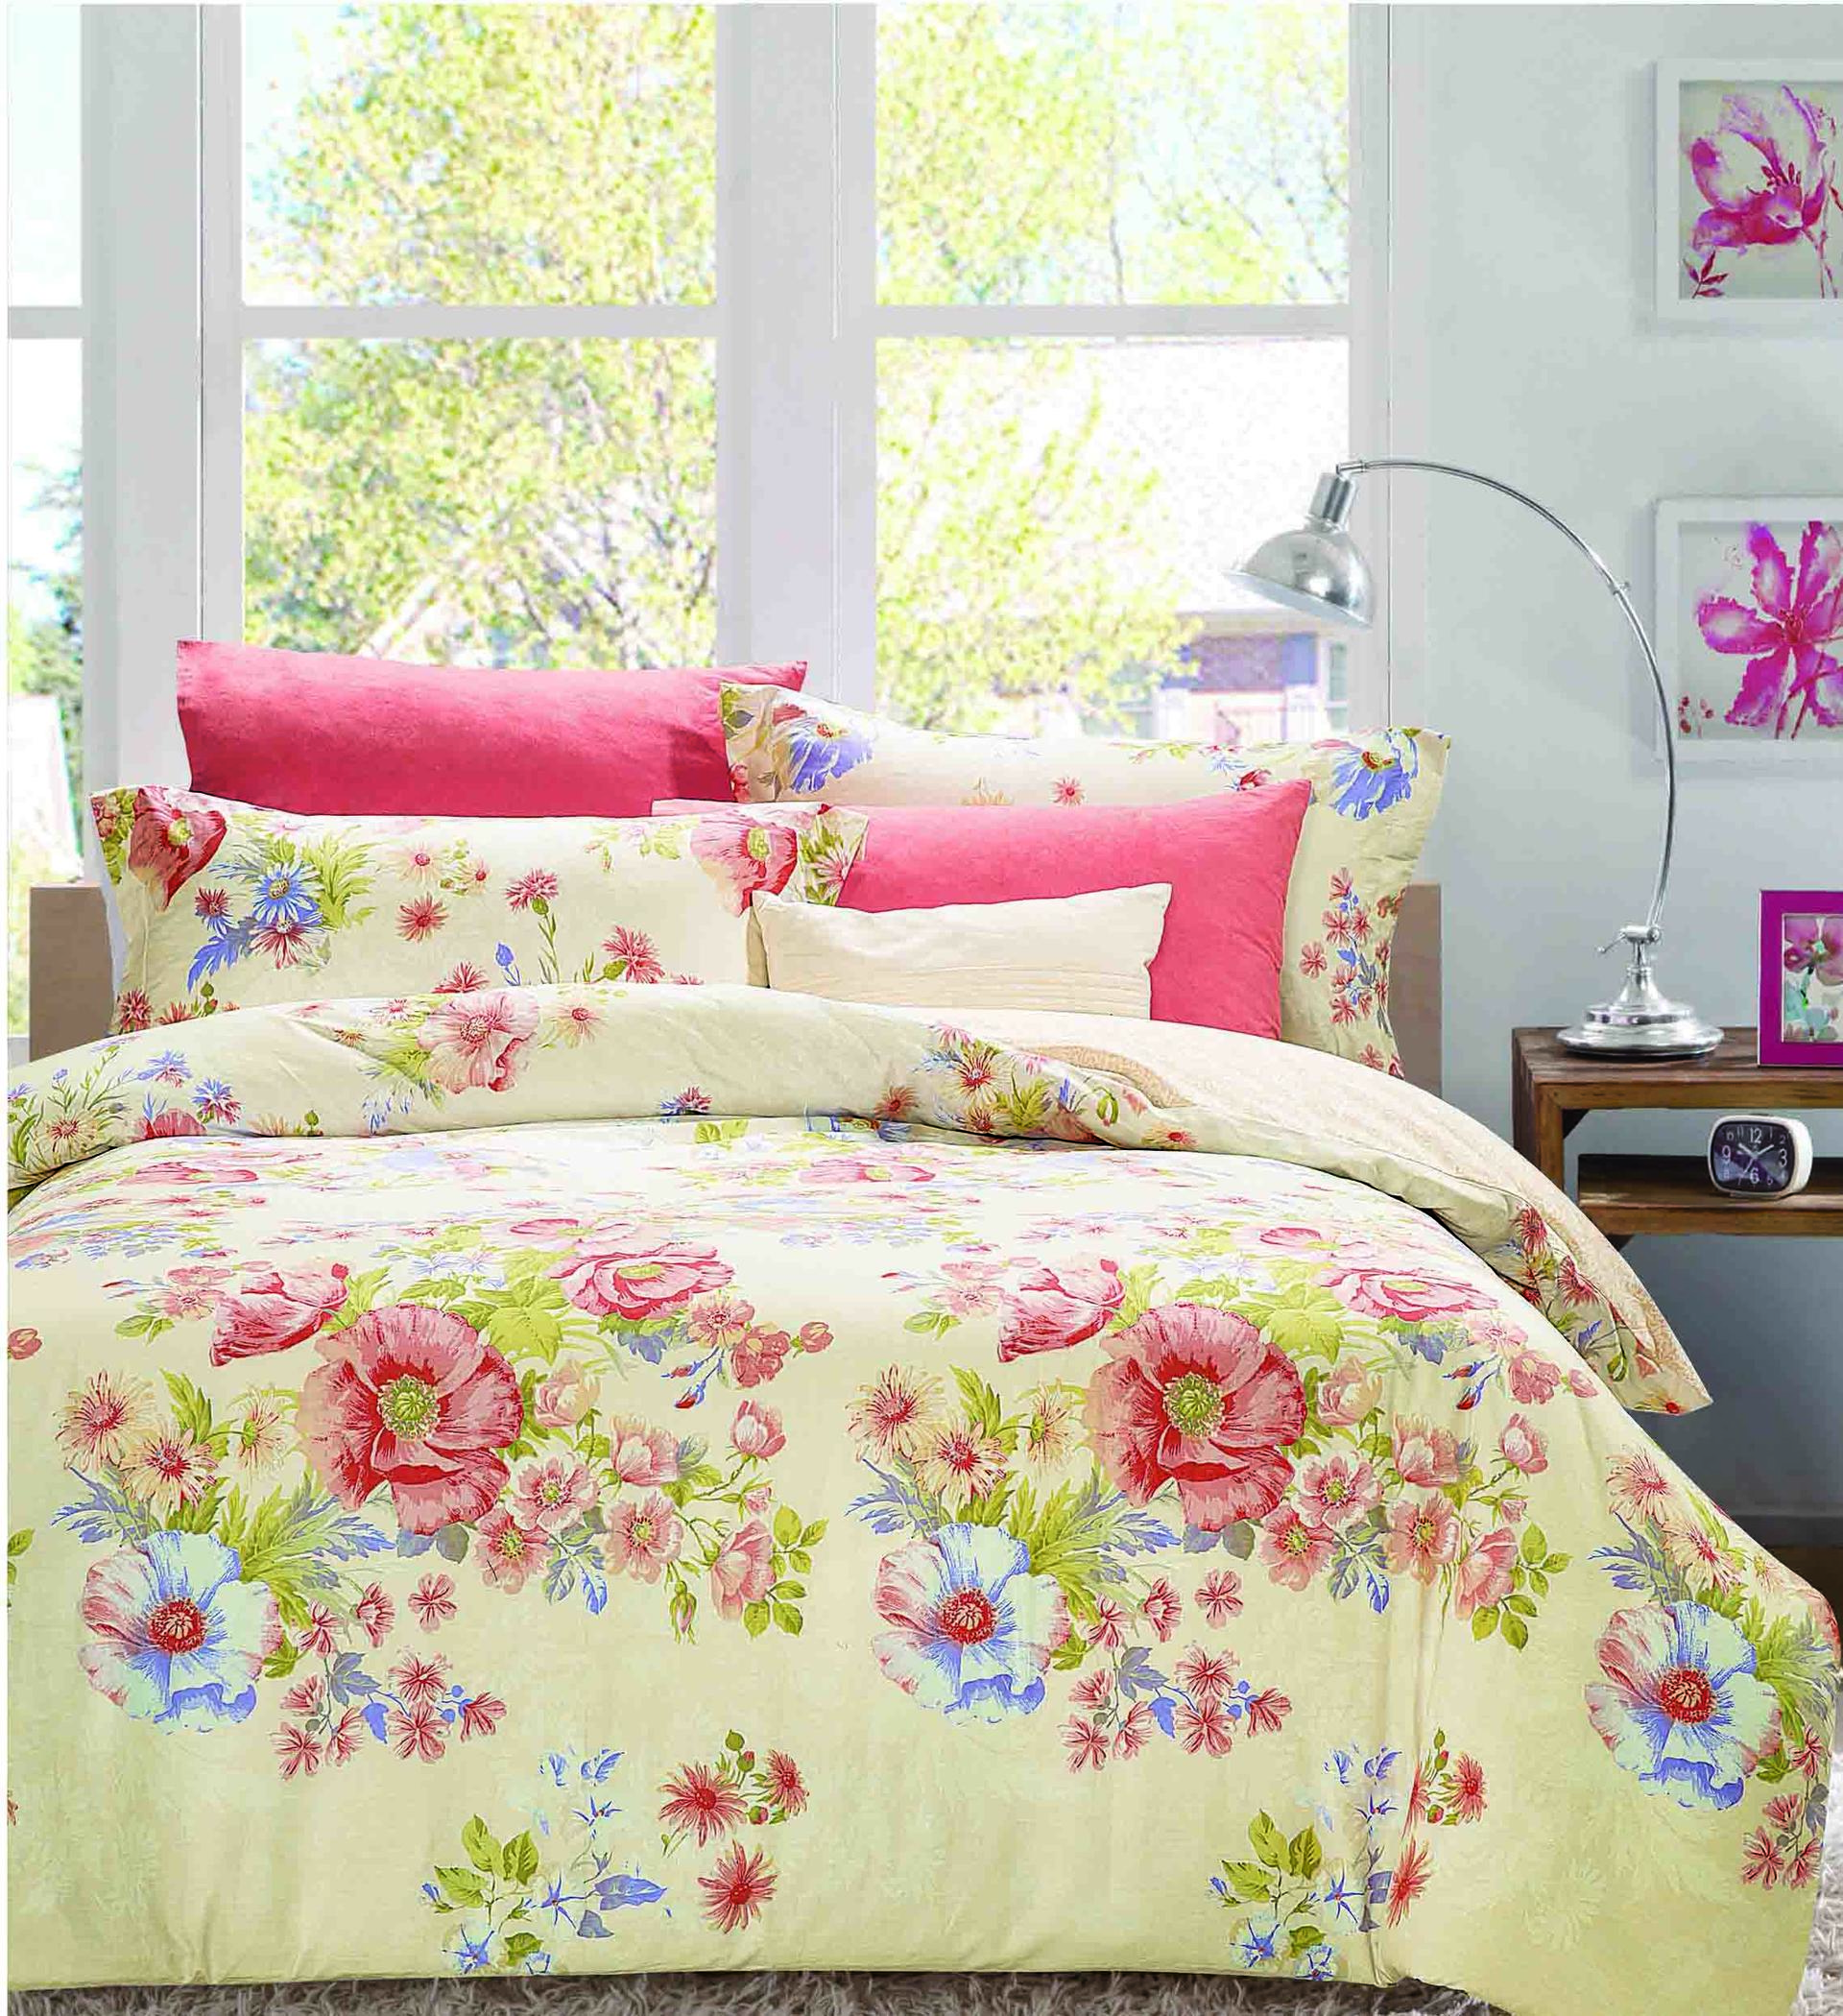 Vivid Floral Patterns Printed Bedding Set   161136